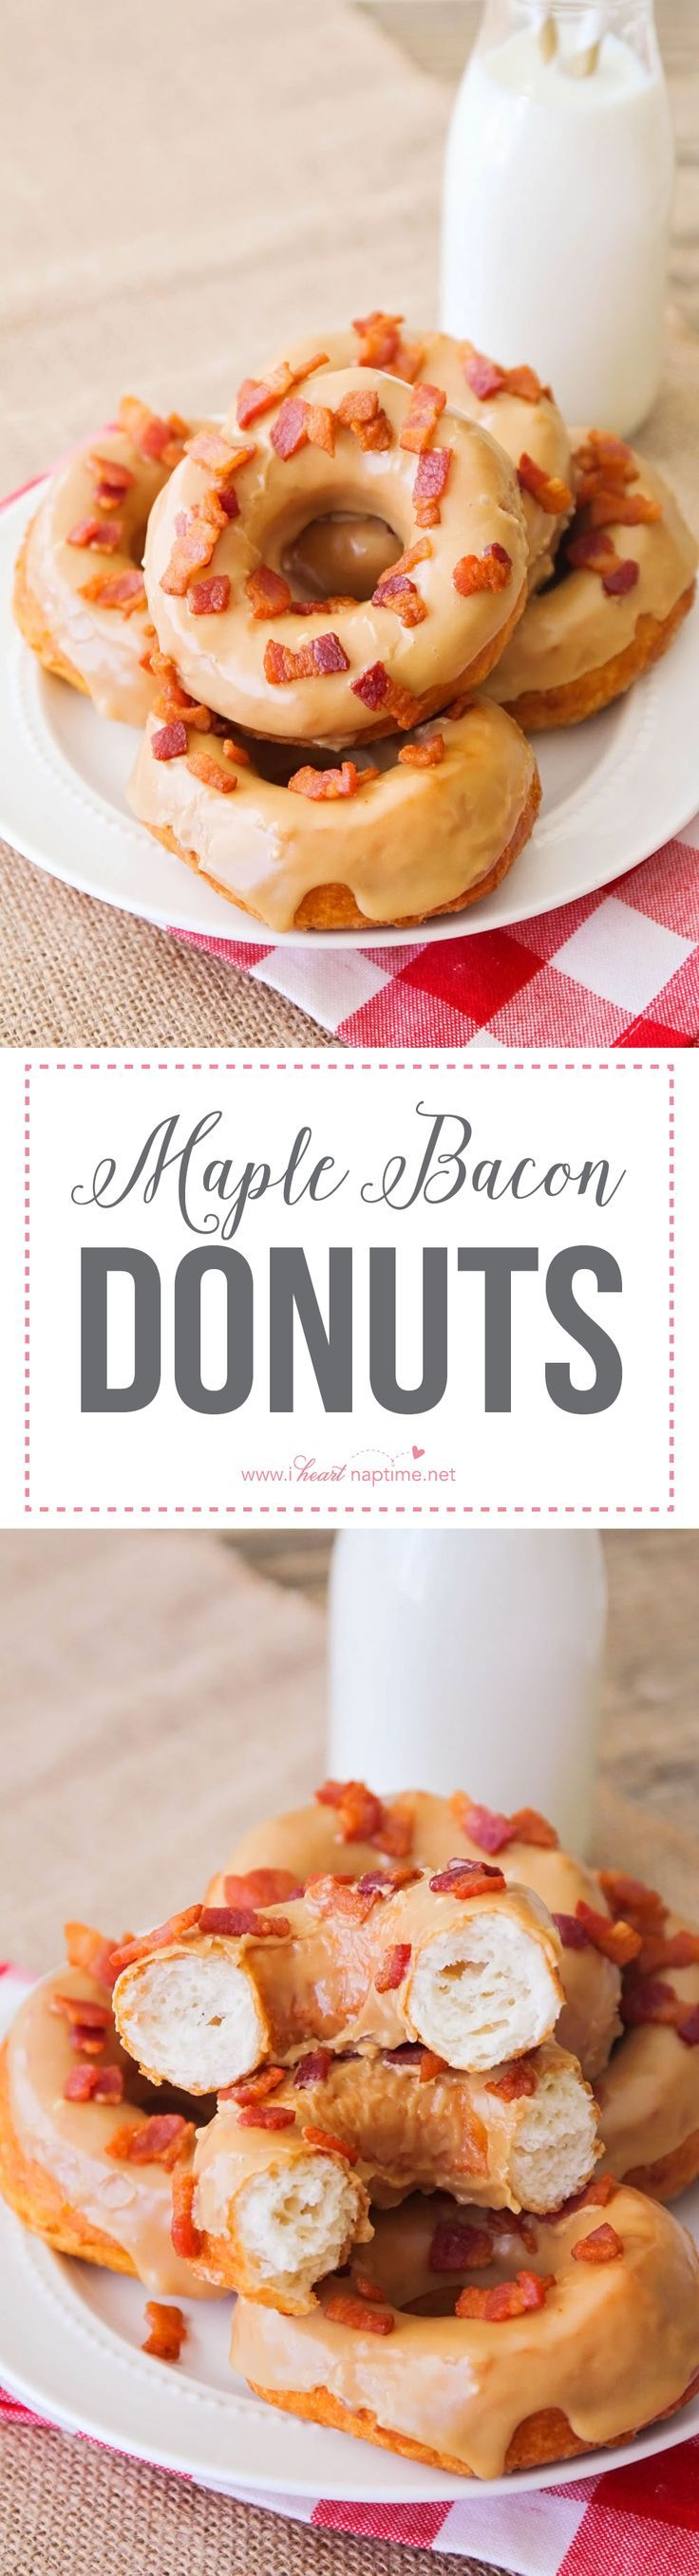 Maple bacon donuts – these delicious sweet and savory donuts are so easy to make and ready in under thirty minutes! I'm not sure what it is about fall, but somehow whenever the leaves start changing, it feels like it's time to make donuts! There's nothing better than snuggling up with a cup of hot